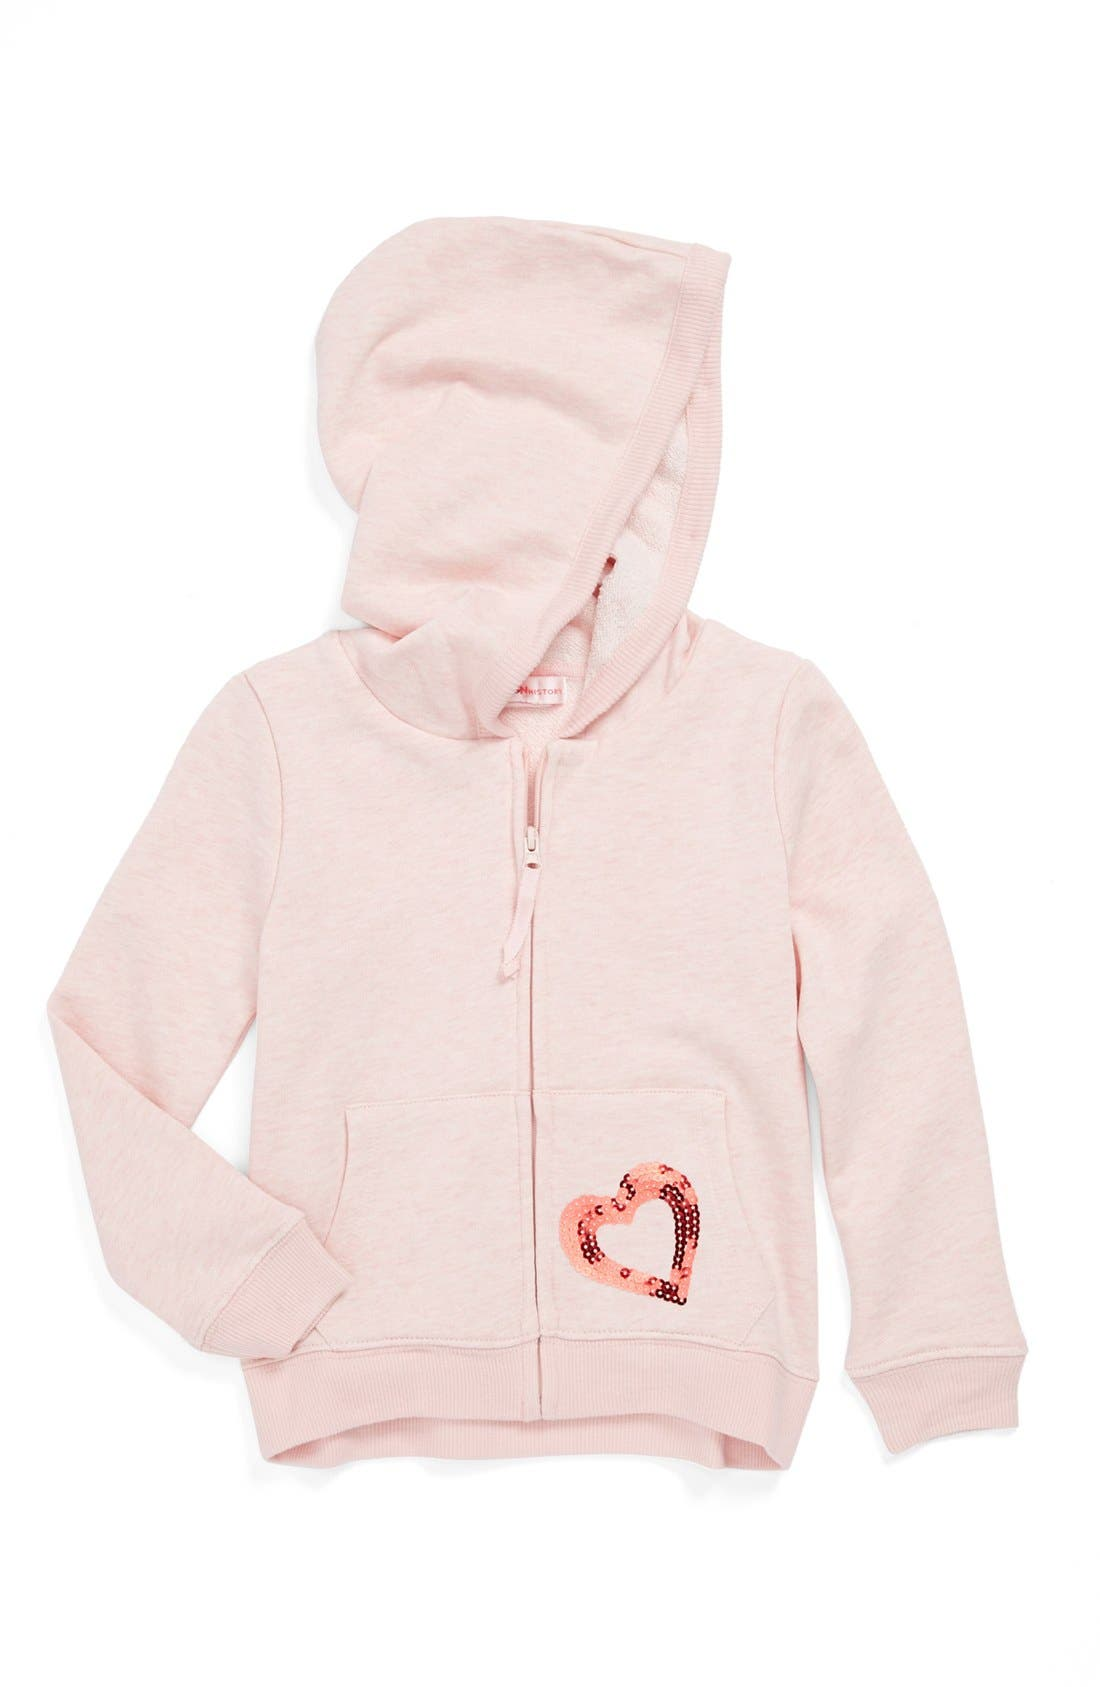 Alternate Image 1 Selected - Design History Zip Hoodie (Toddler Girls)